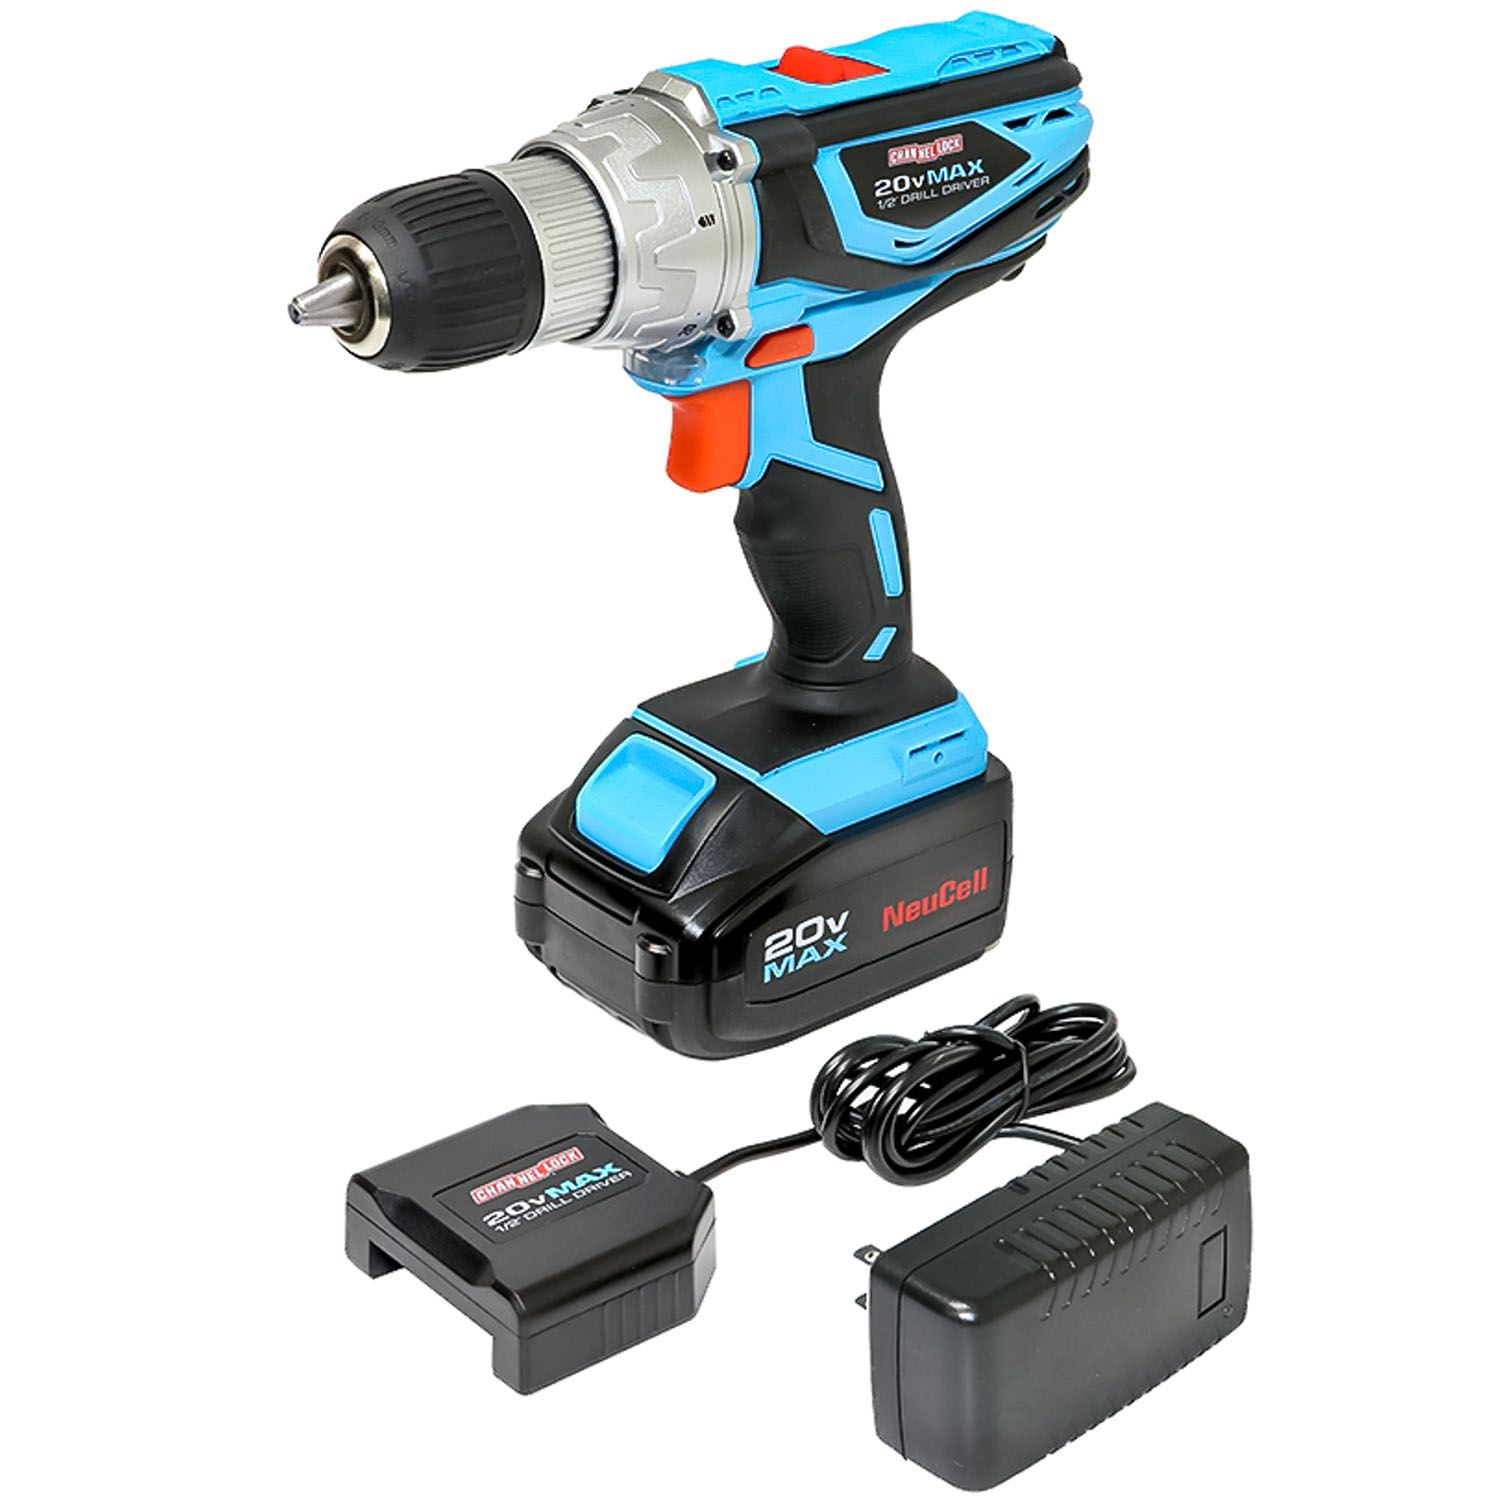 Channellock Cordless Drill